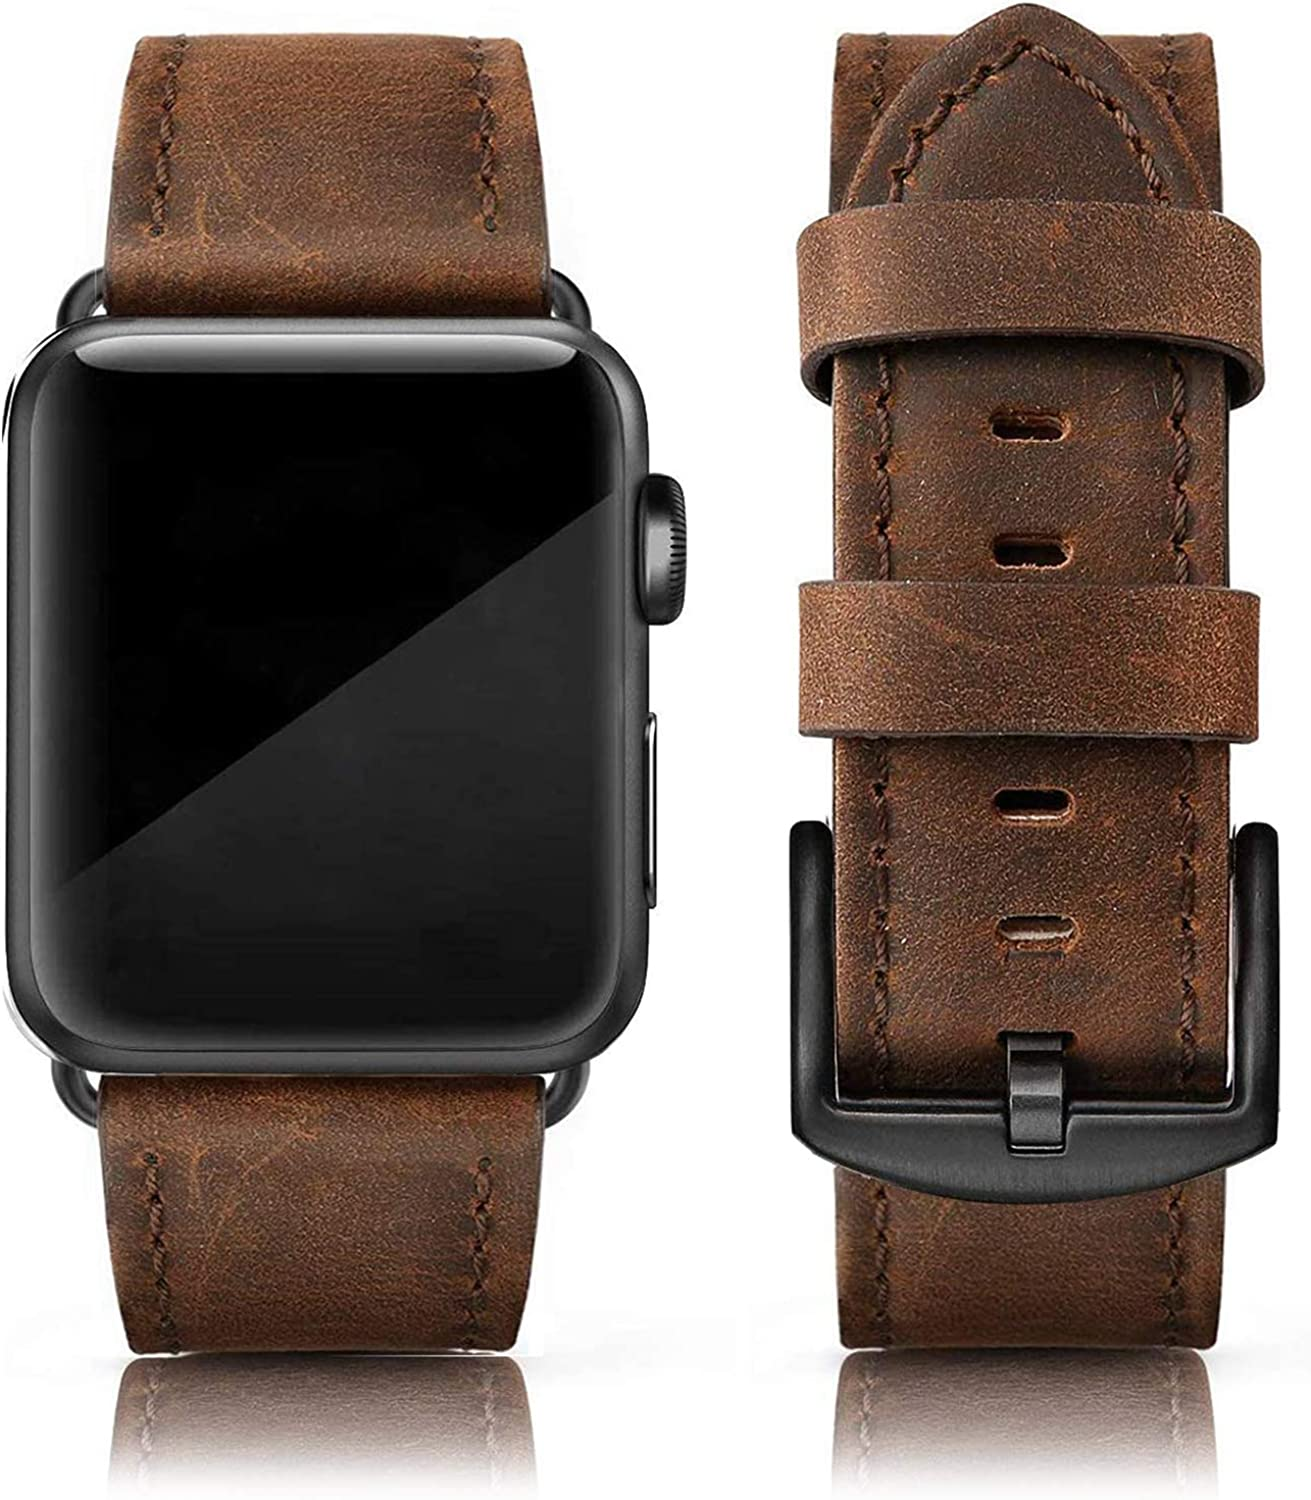 EDIMENS Leather Bands Compatible with Apple Watch 42mm 44mm Band Men Women, Vintage Genuine Leather Wristband Replacement Band Compatible for Apple Watch iwatch SE Series 6 5 4 3 2 1, Sports & Edition, Black Brown